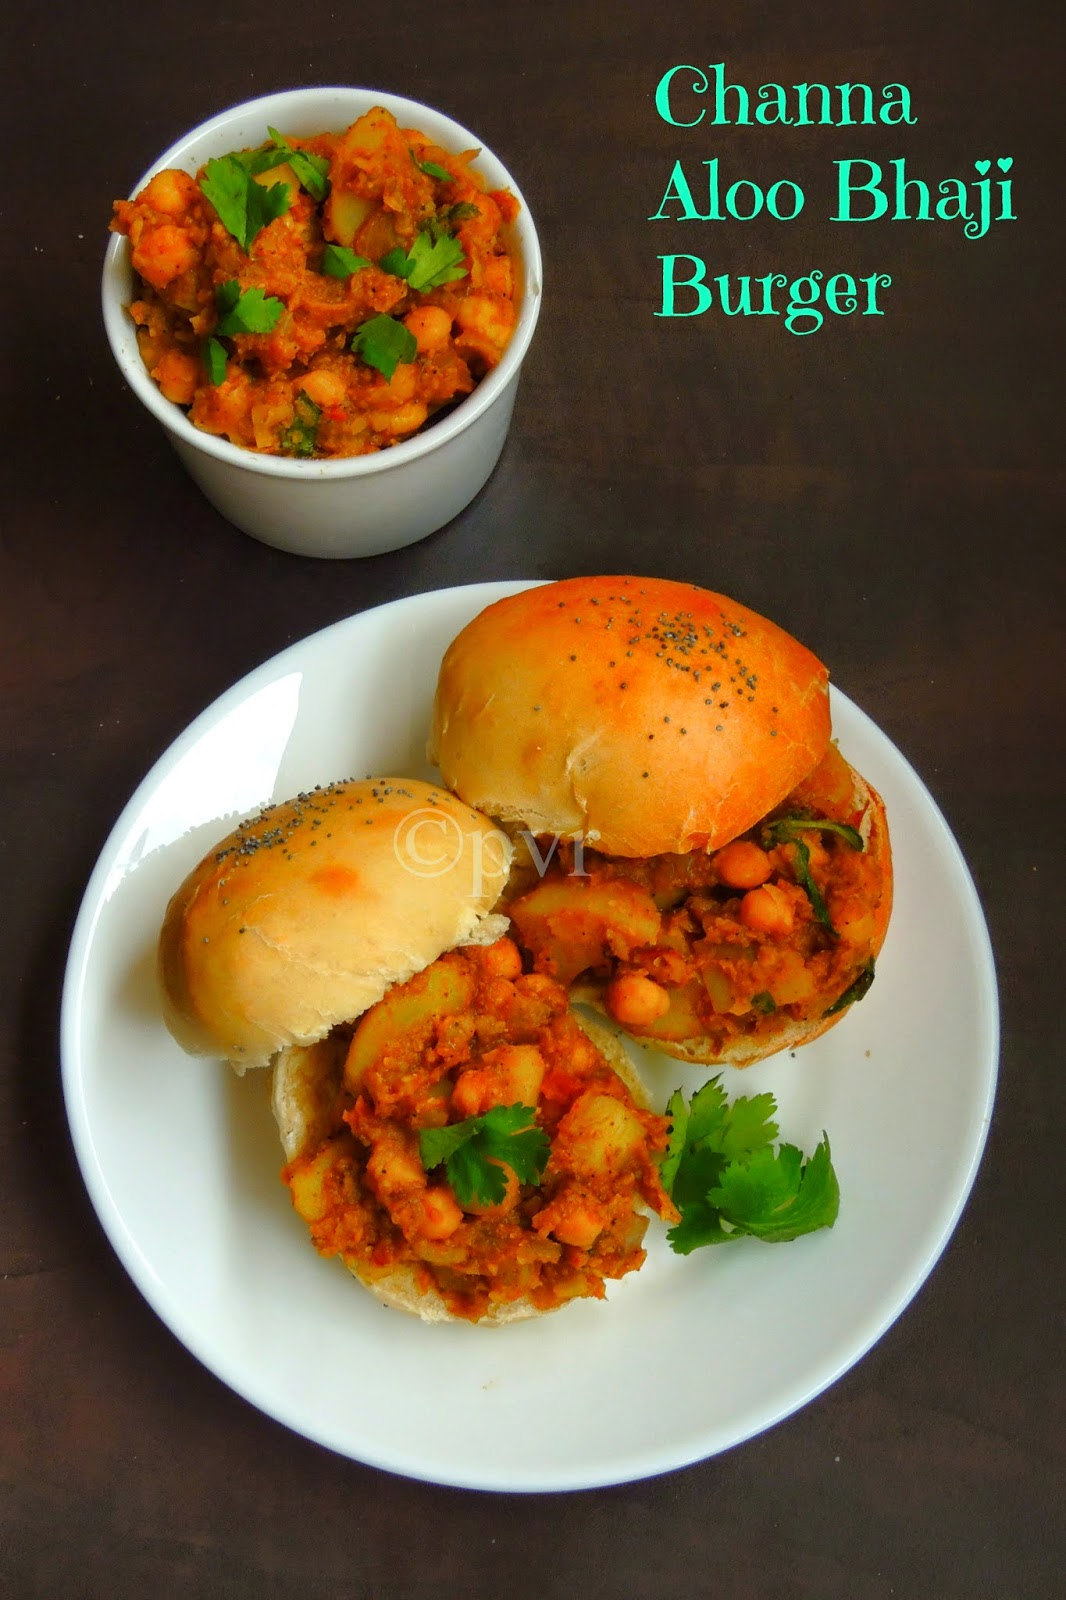 Channa Aloo Bhaji Burger, Channa Aloo Burger Sandwich